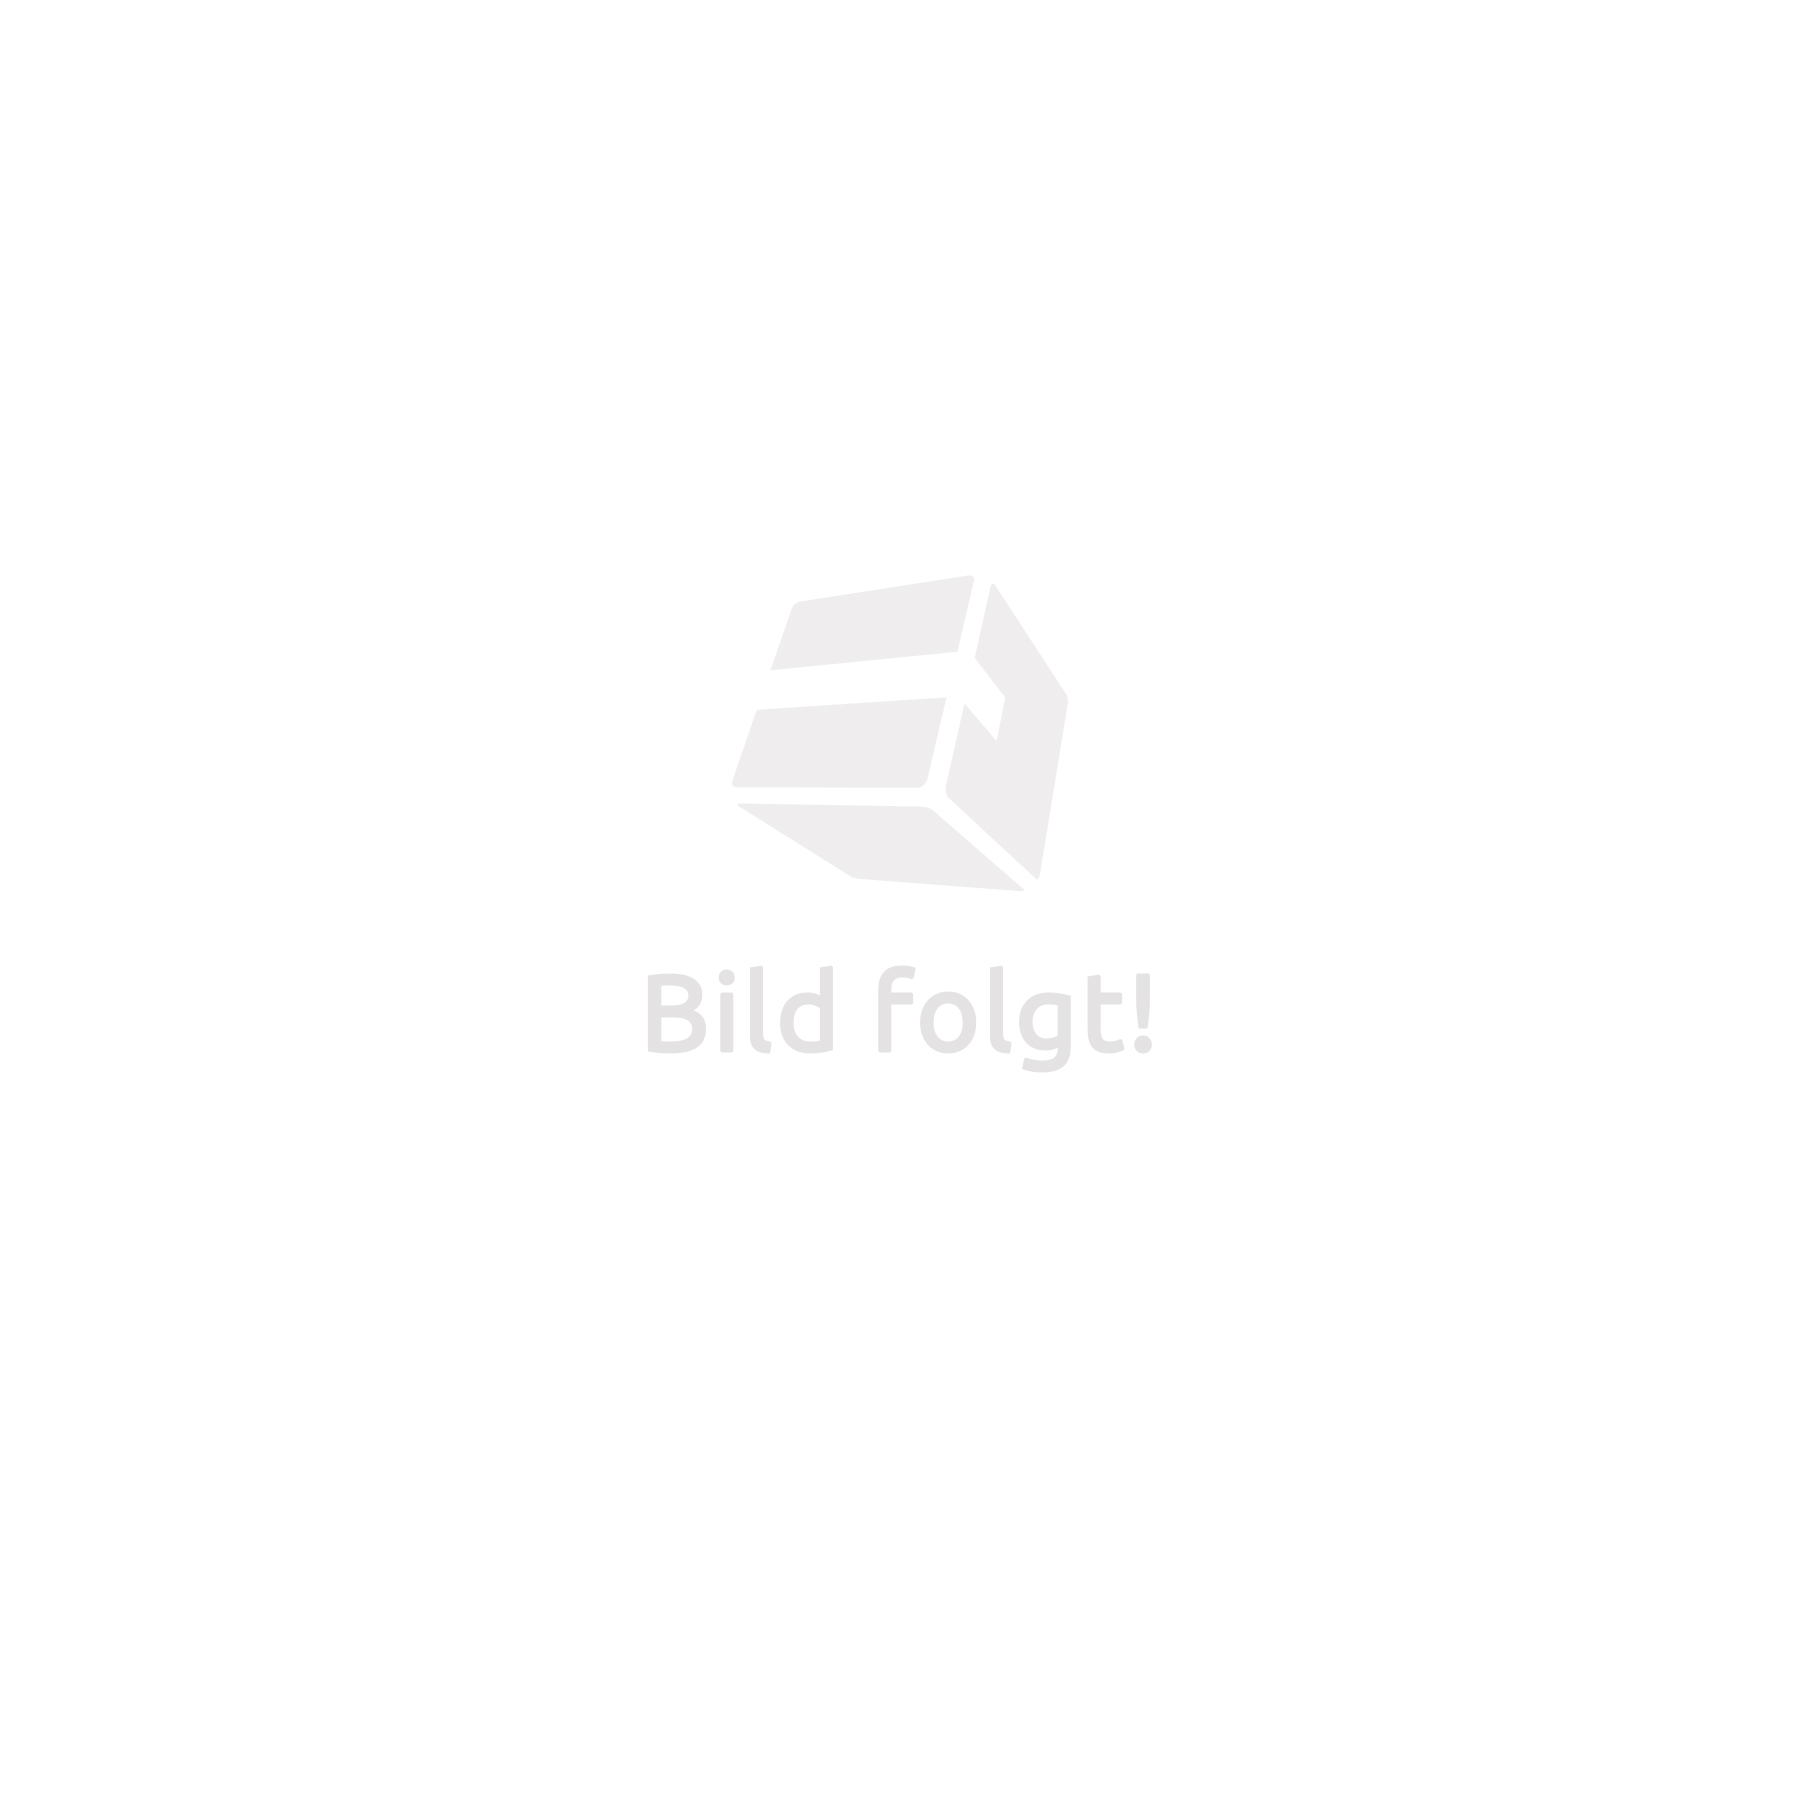 Bug hotel made of wood